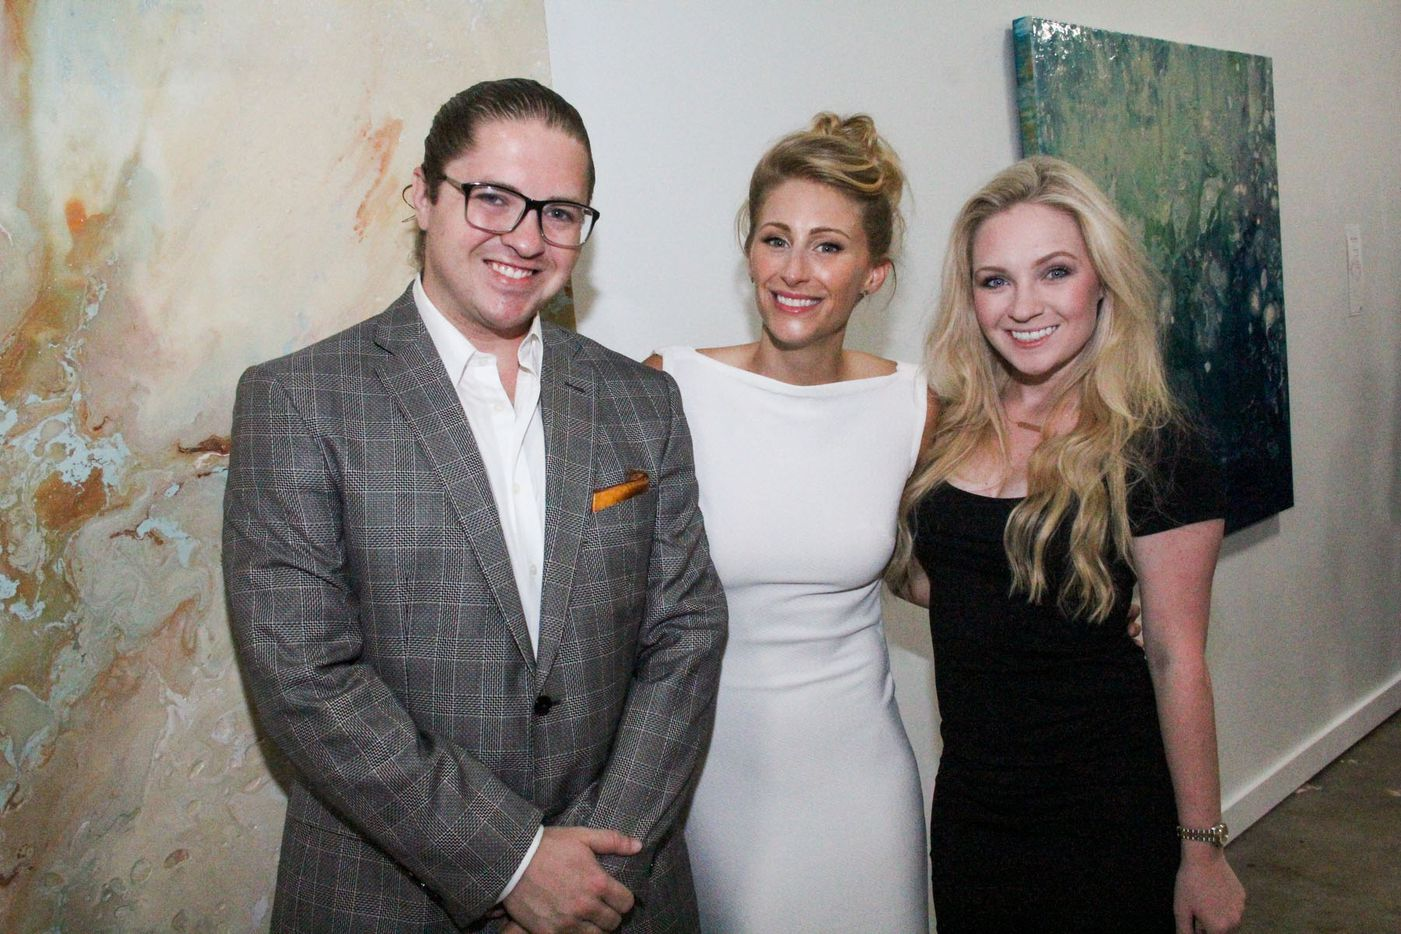 Jarrod Fresquez, Toni Martin and Megan Michelle at Random Art Gallery. The exhibit, Euphoria by Toni Martin, is a burst of color on the white walls.